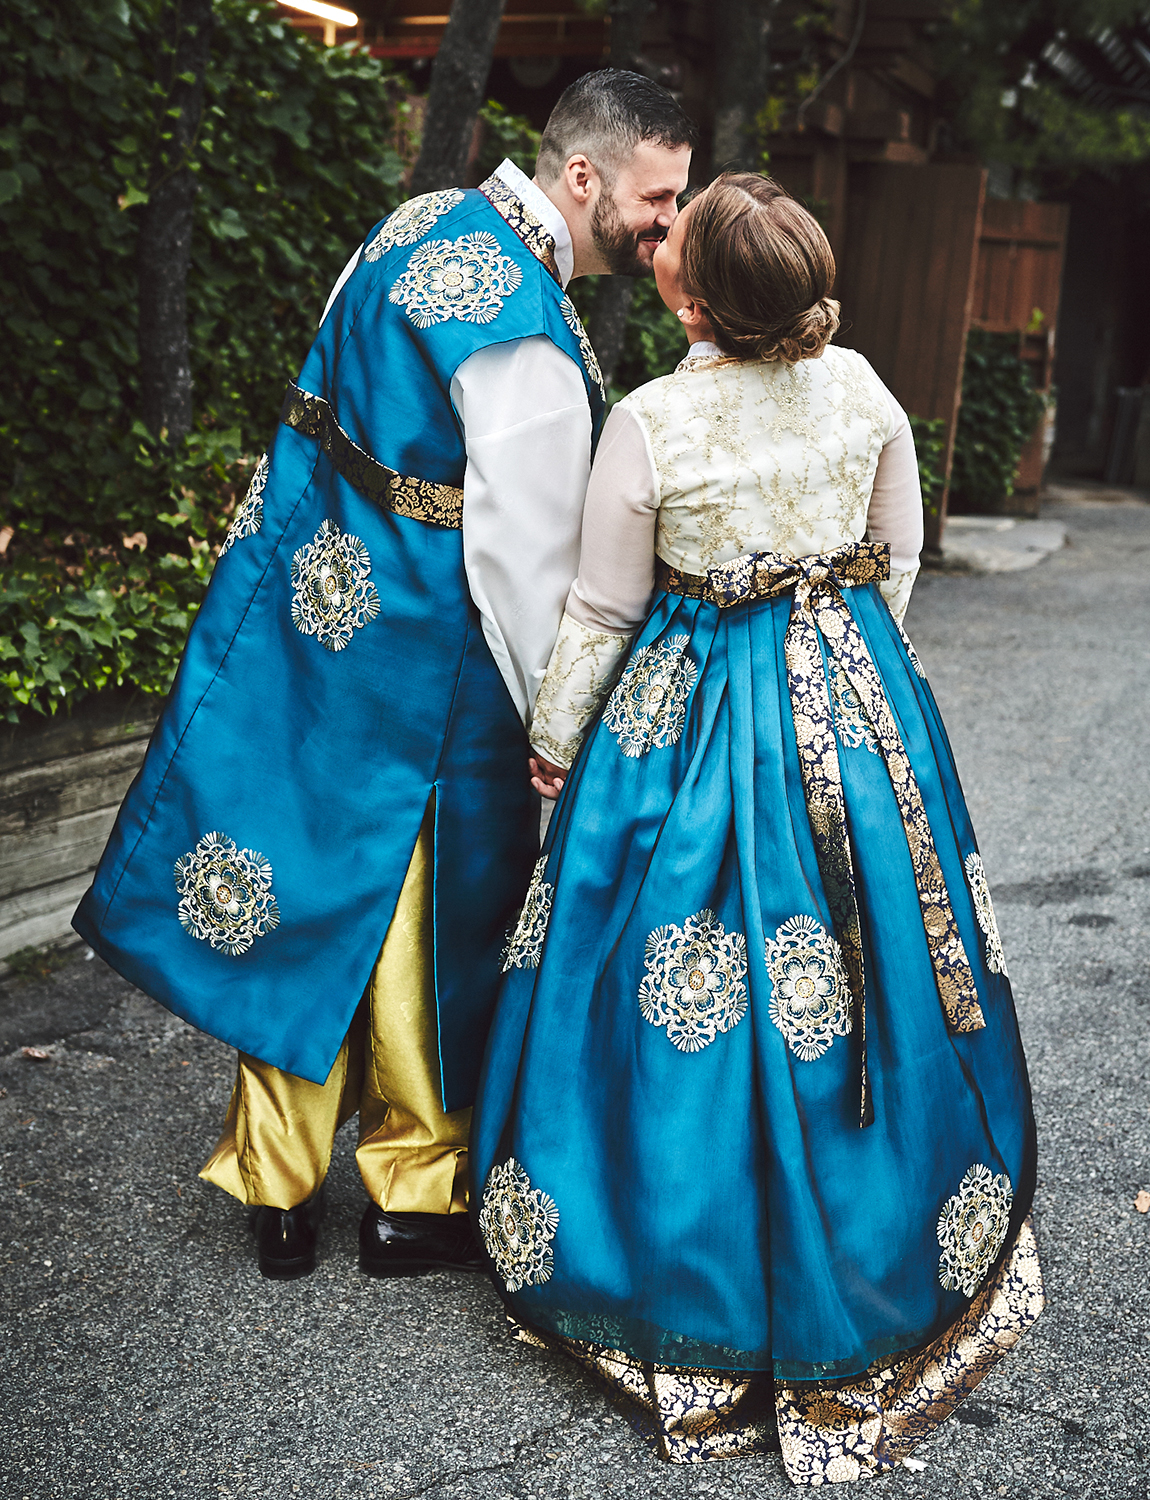 180920_KumGangSanRestaurantQueensPyebaekCeremony_NewYorkWeddingPhotographer_By_BriJohnsonWeddings_0008.jpg